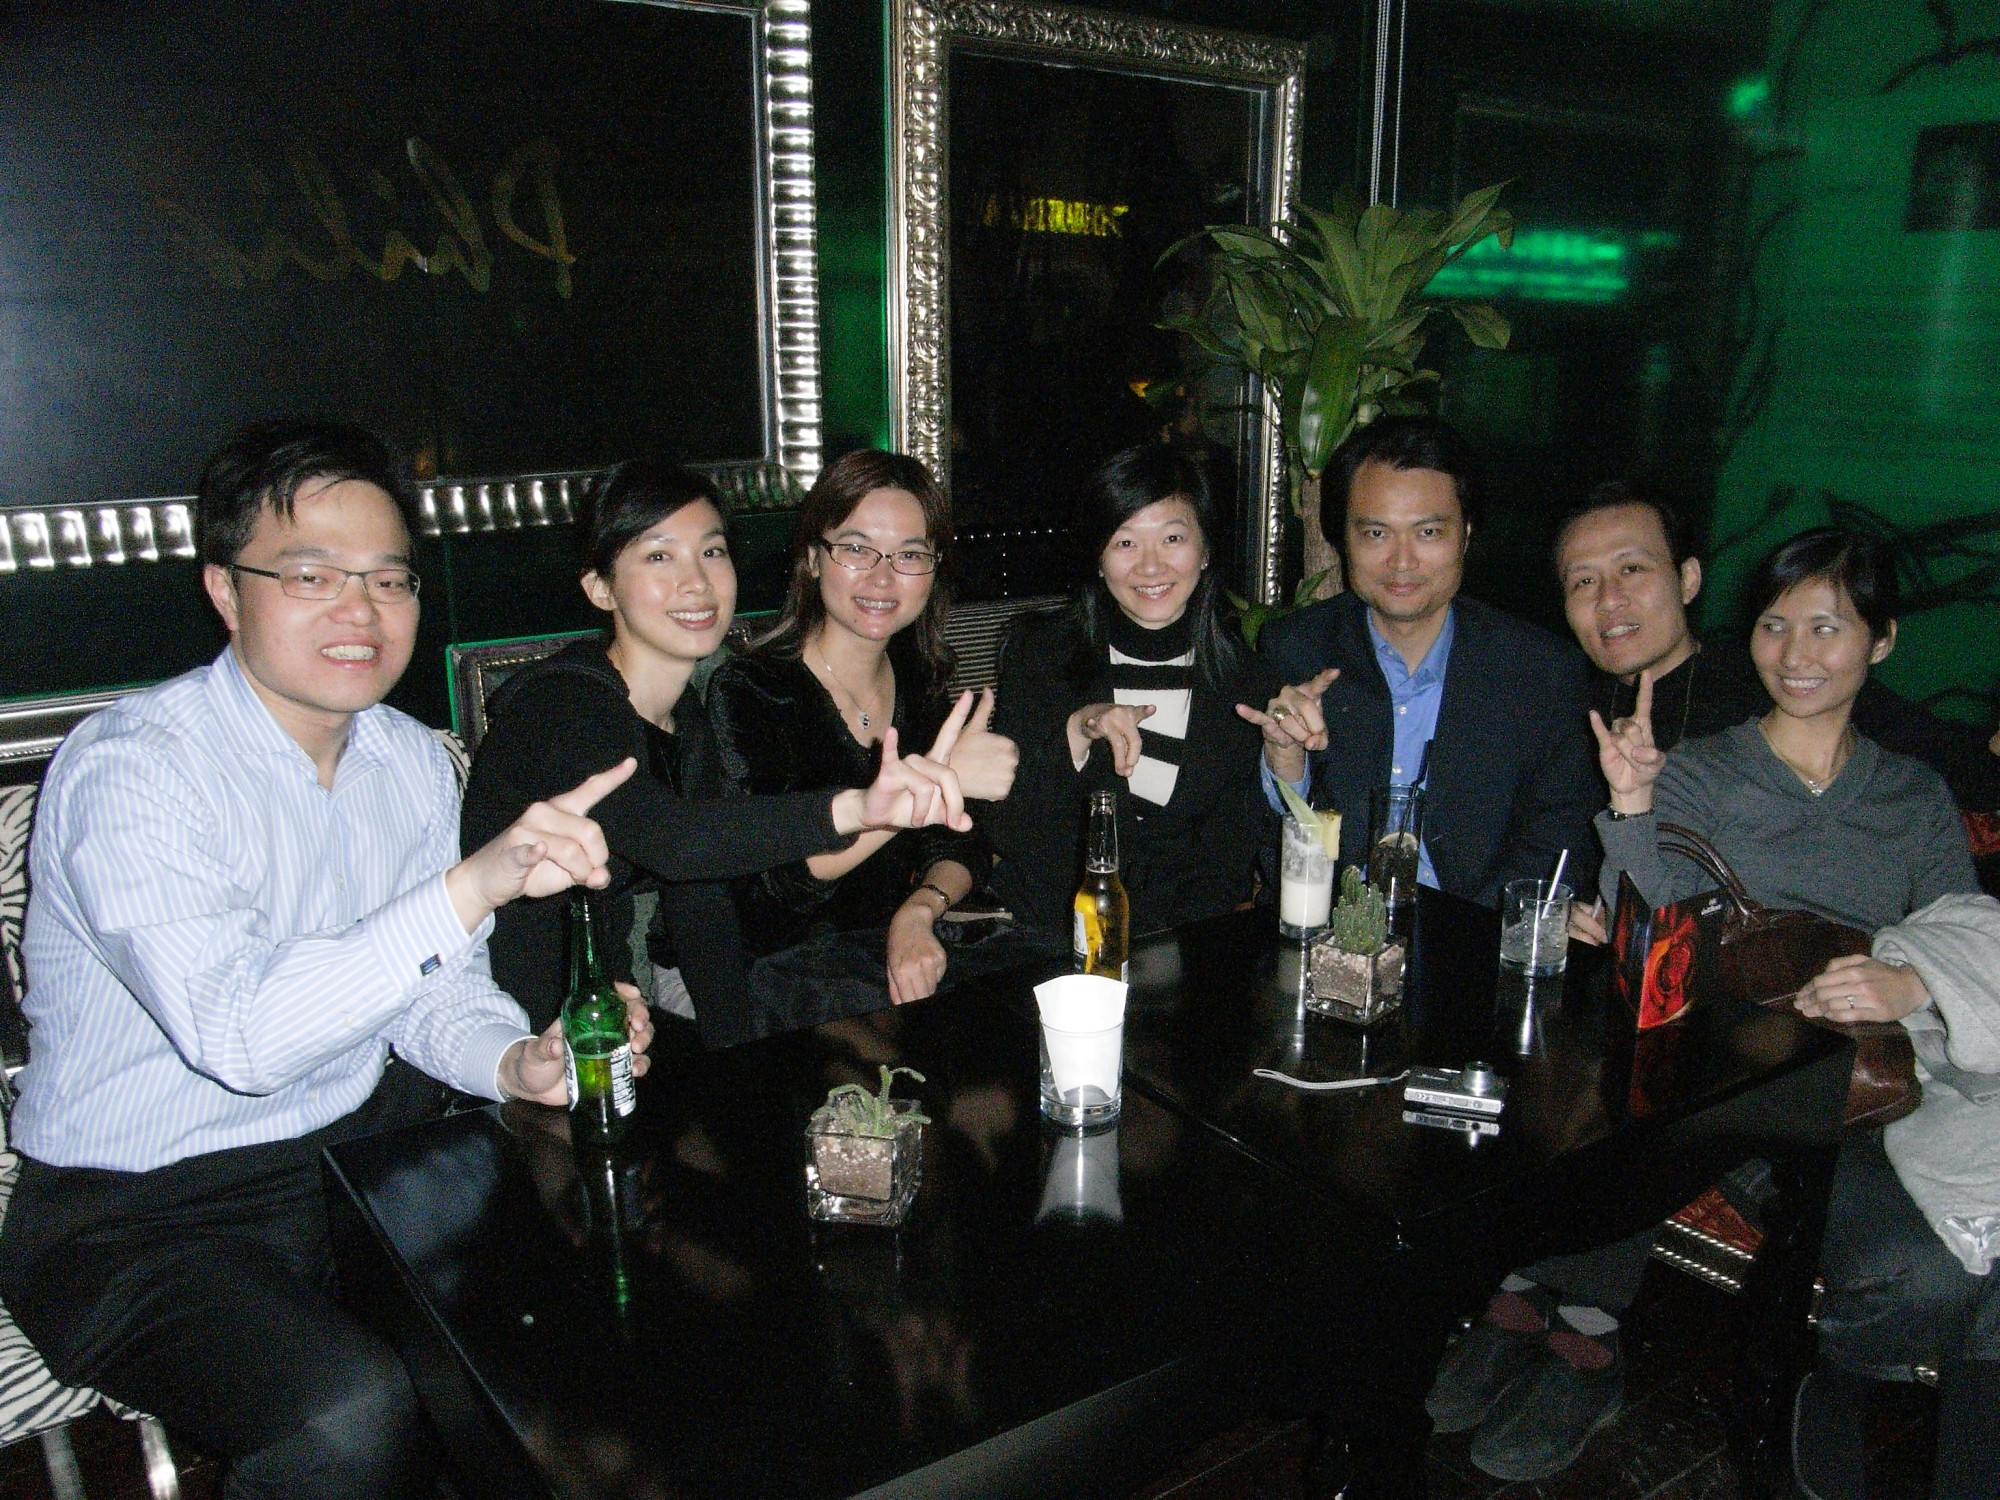 Hong Kong Inter-Club Alumni Monthly Happy Hour – November 2007